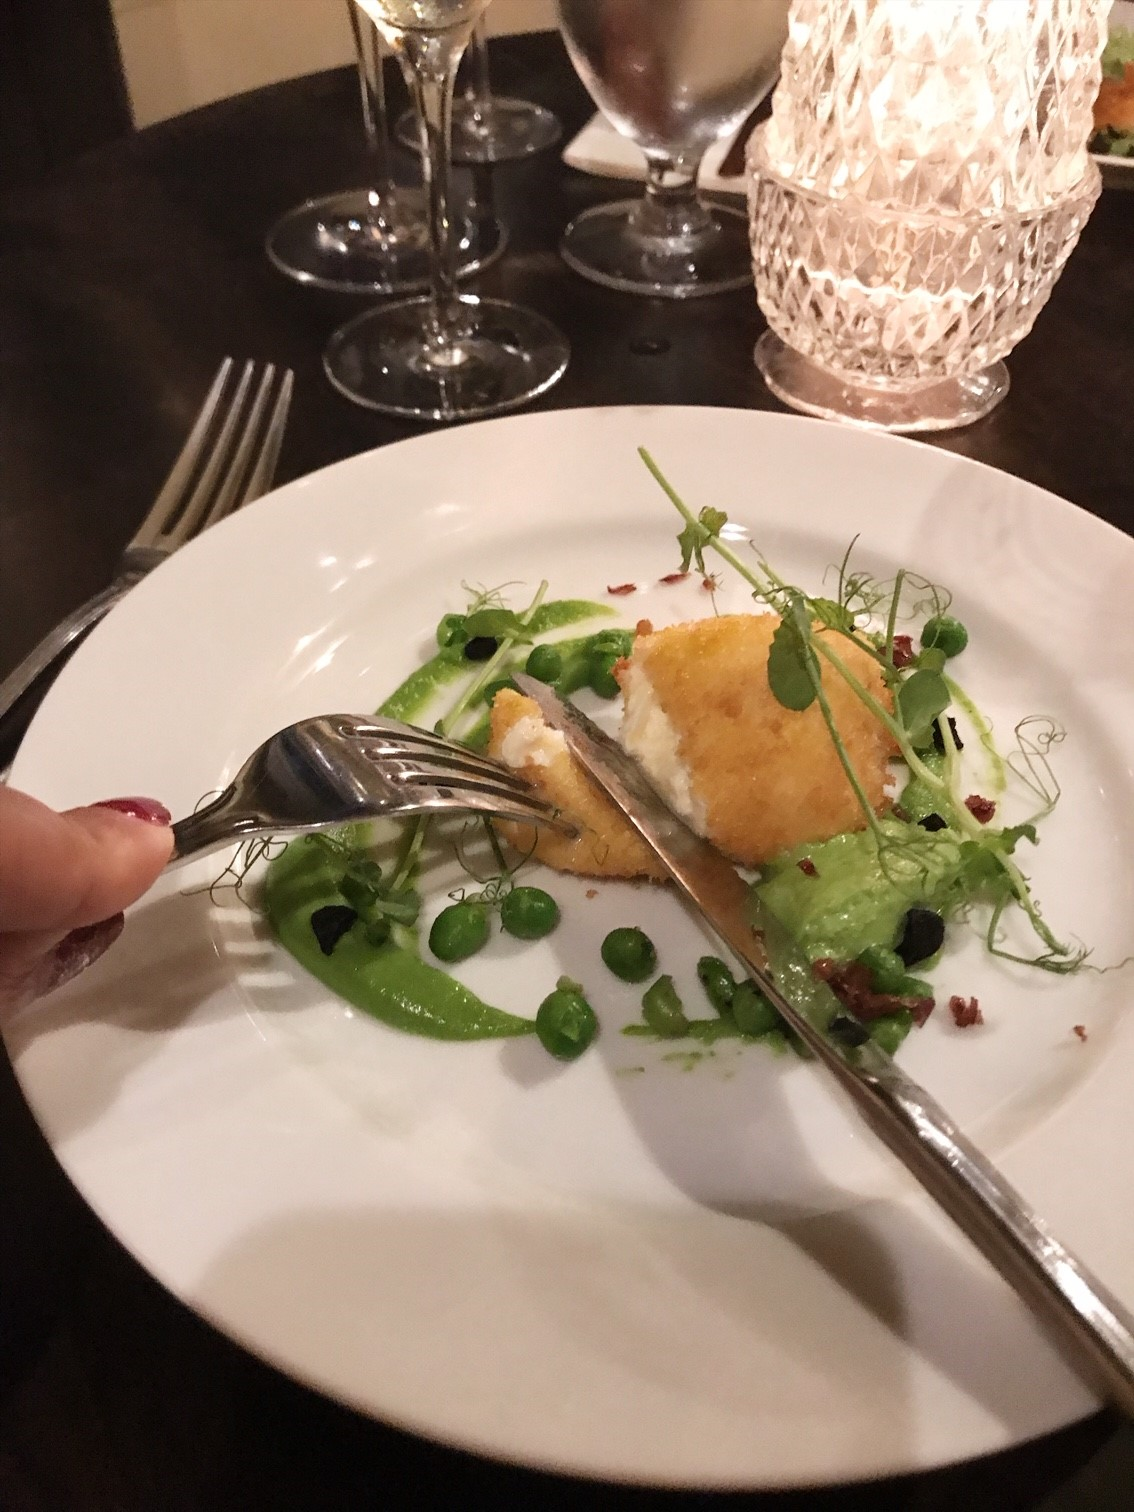 Elena Walch Wine Tasting at the Dove Restaurant - Third Course - Fried Burrata with Textures of Pea